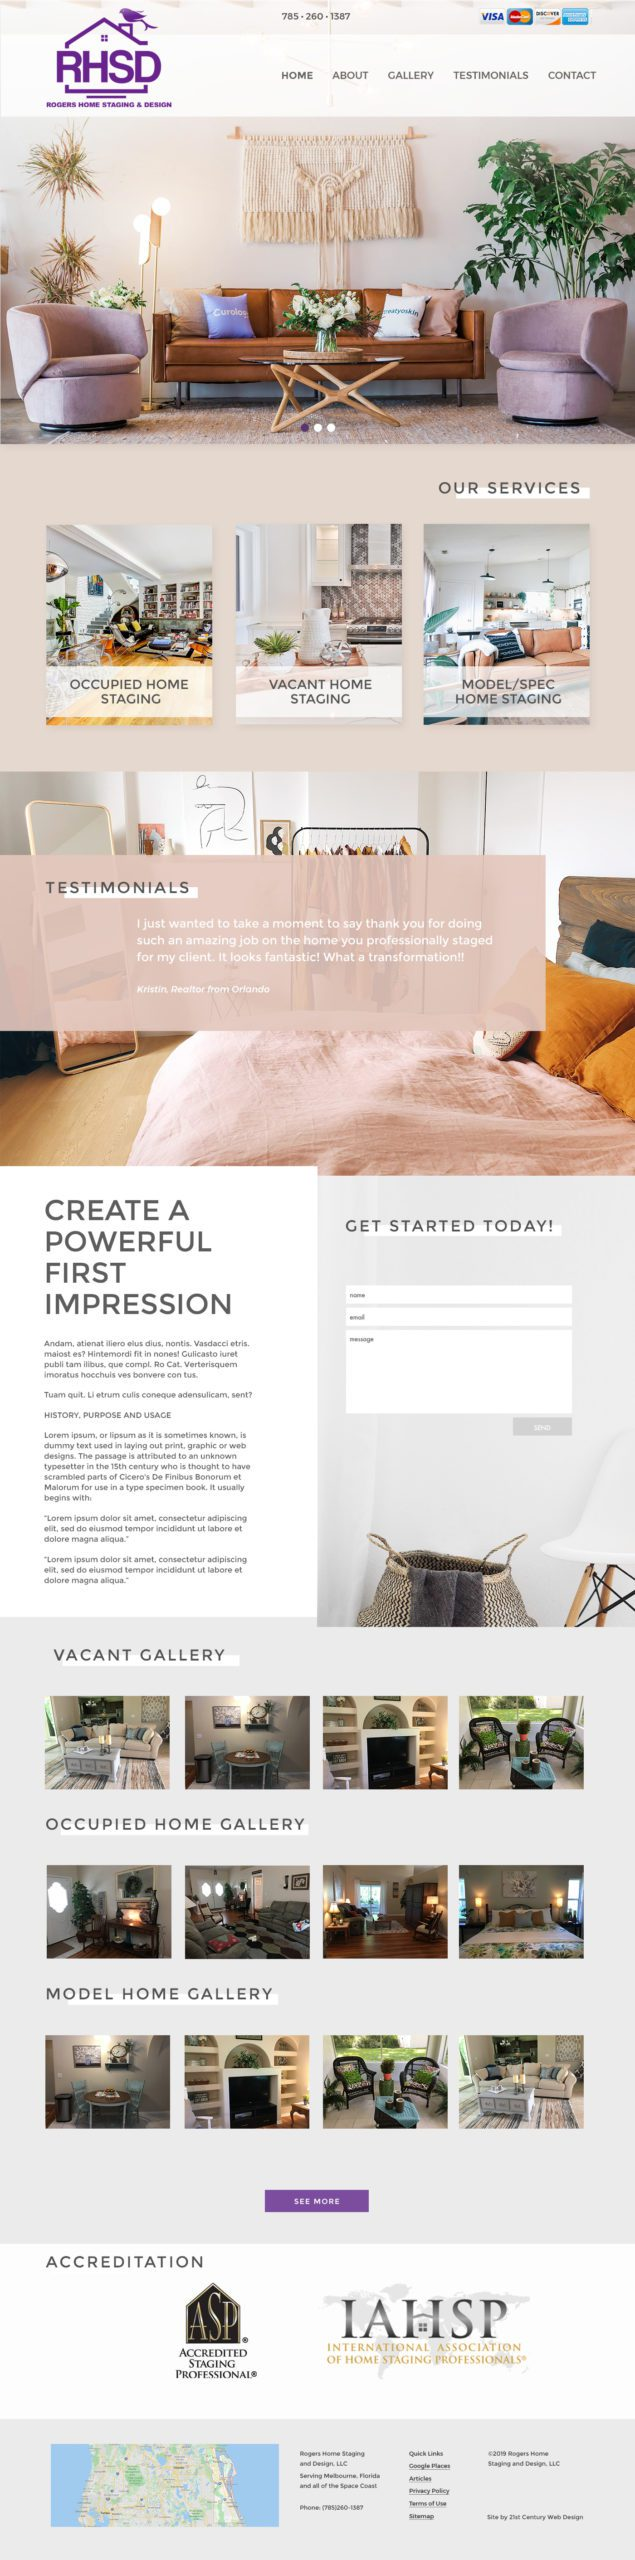 Interior Design Company Custom Website Design